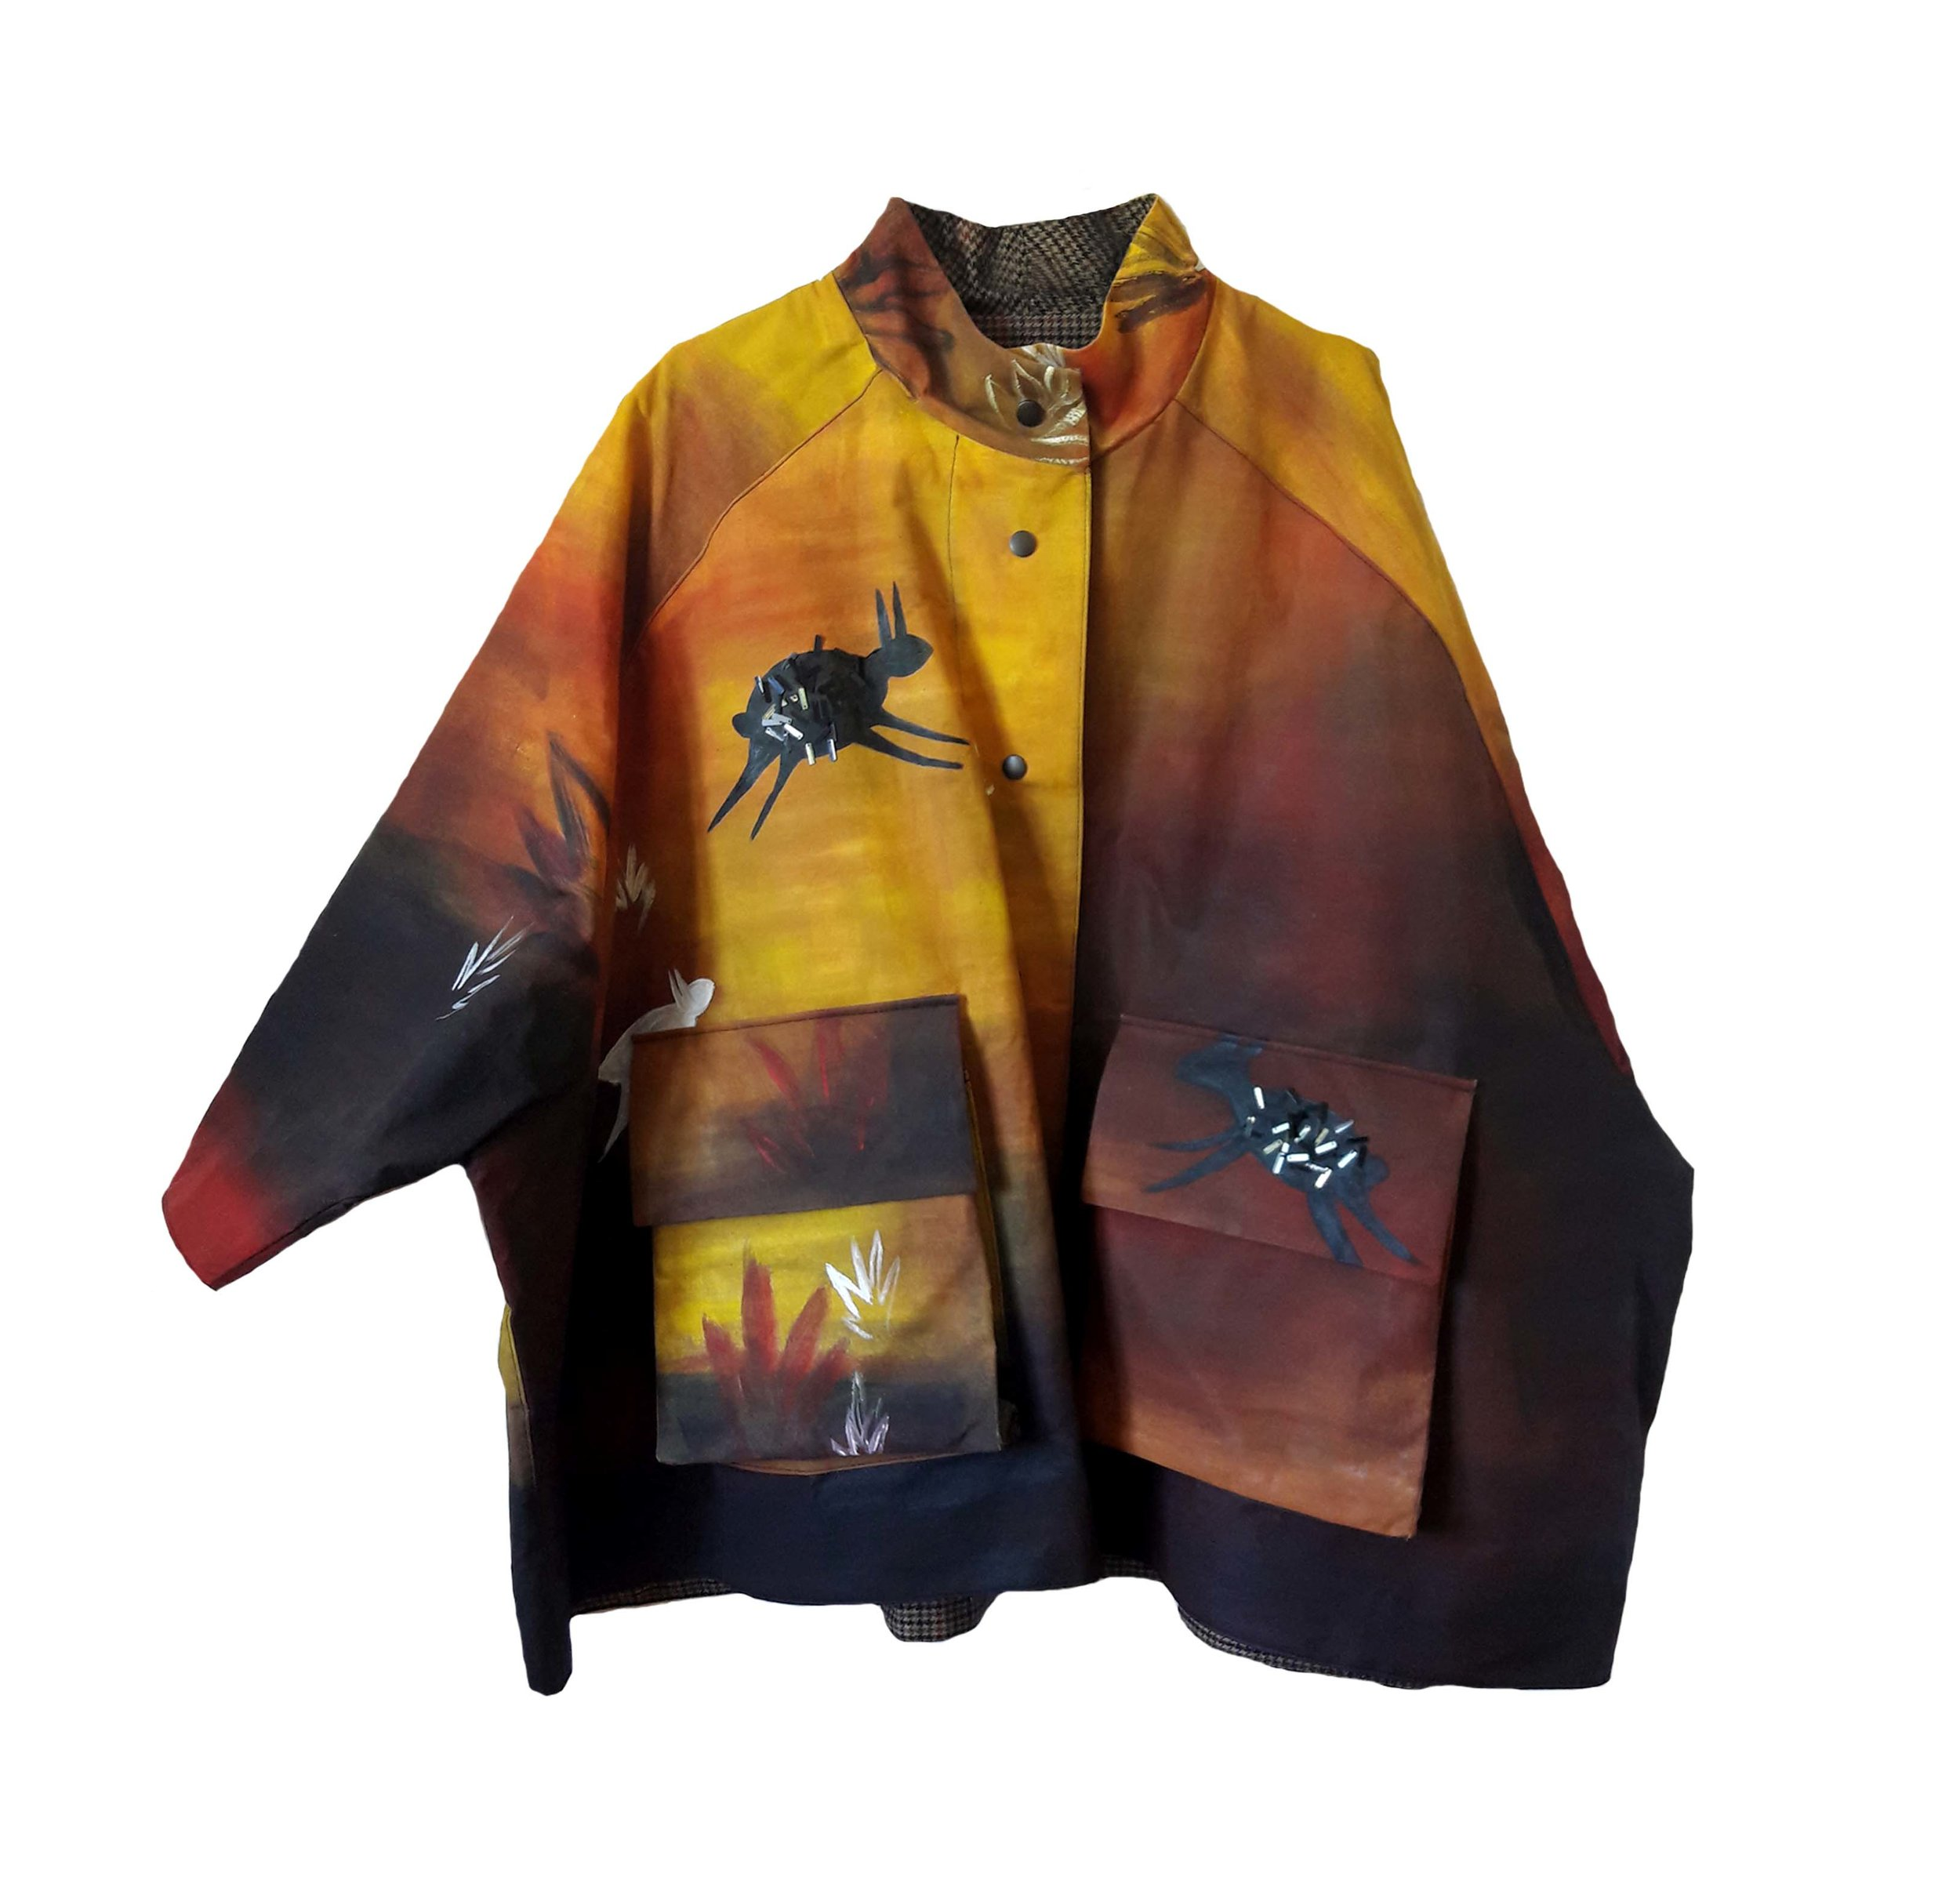 HAND PAINTED WAX COTTON HUNTER COAT €850